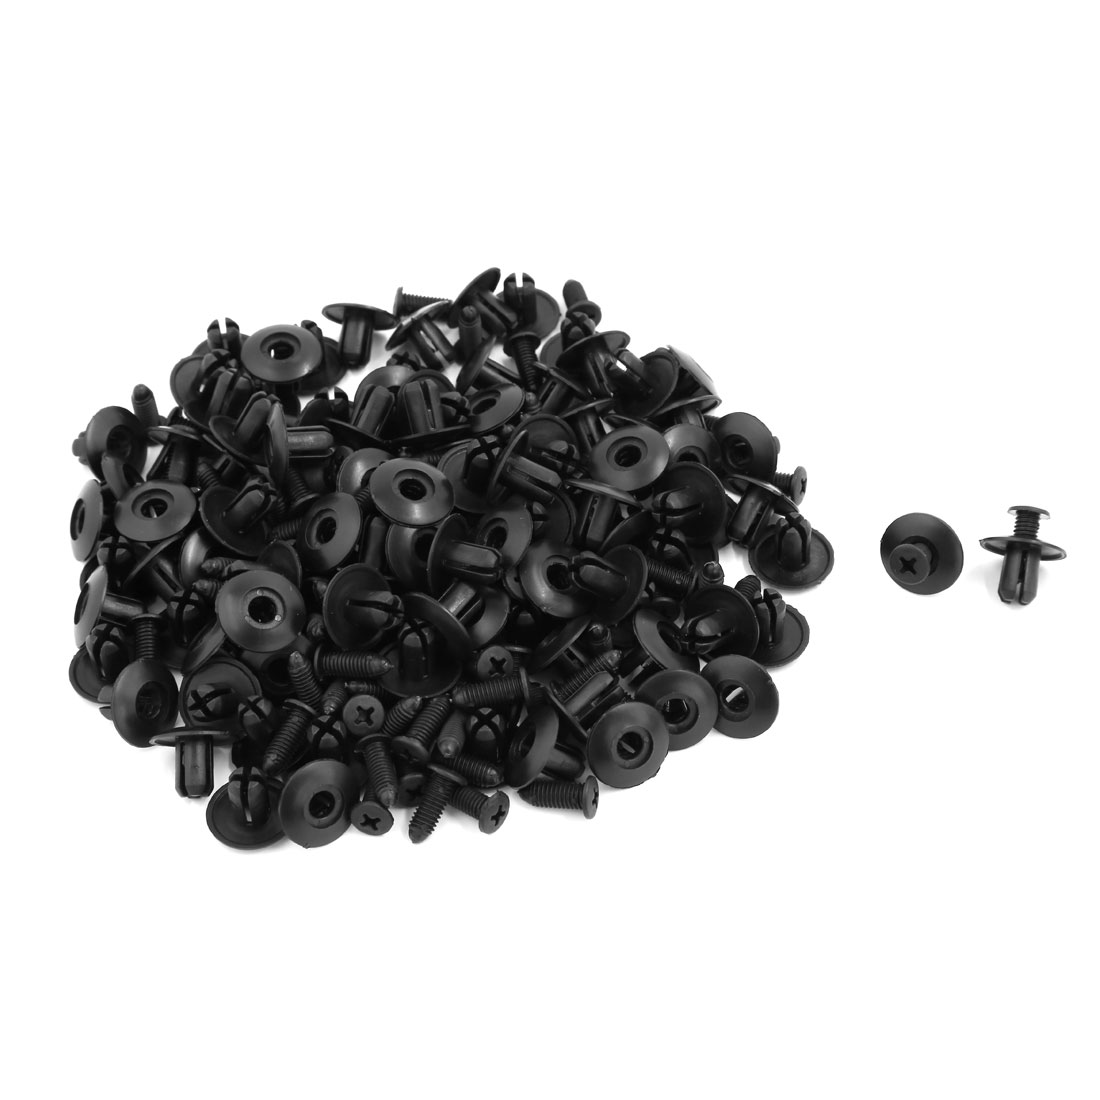 Car Splash Guard Screw Rivet Retainer Clips Fender Trim Fastener Black 100 Pcs